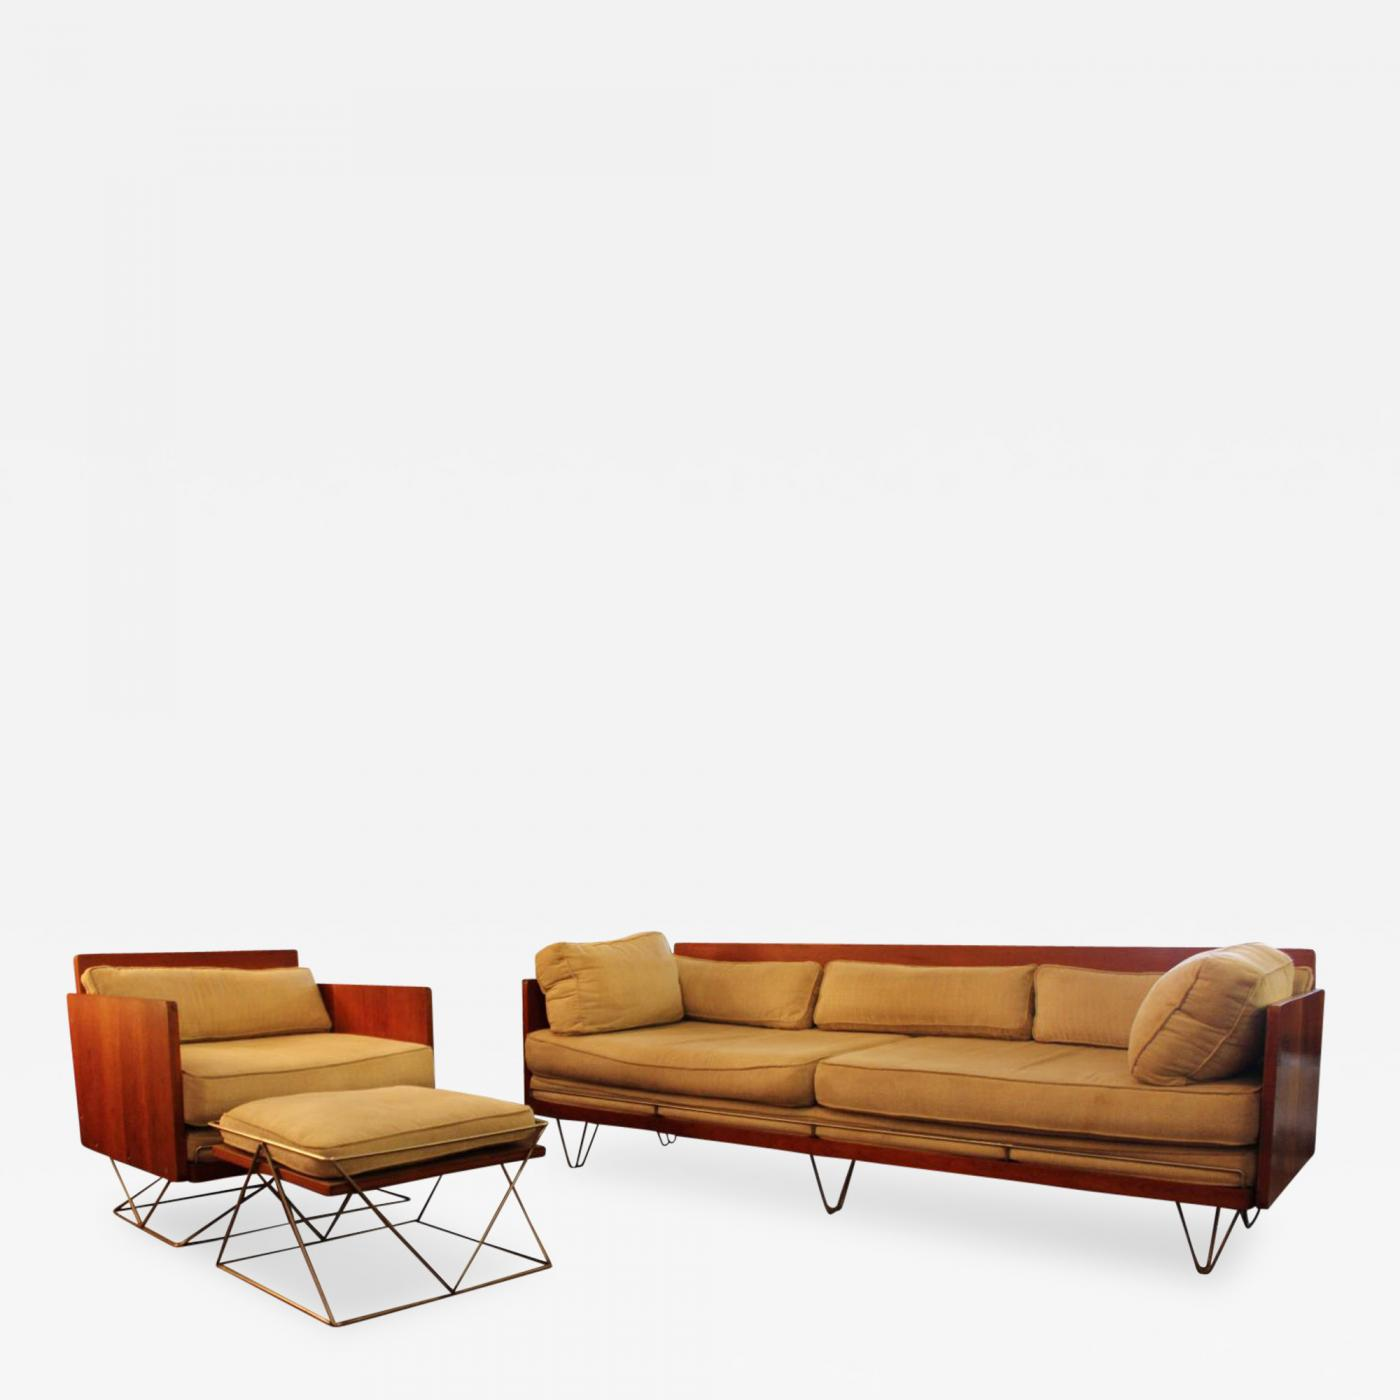 Furniture Legs For Ottomans mid century modern walnut encased sofa chair & ottoman hairpin